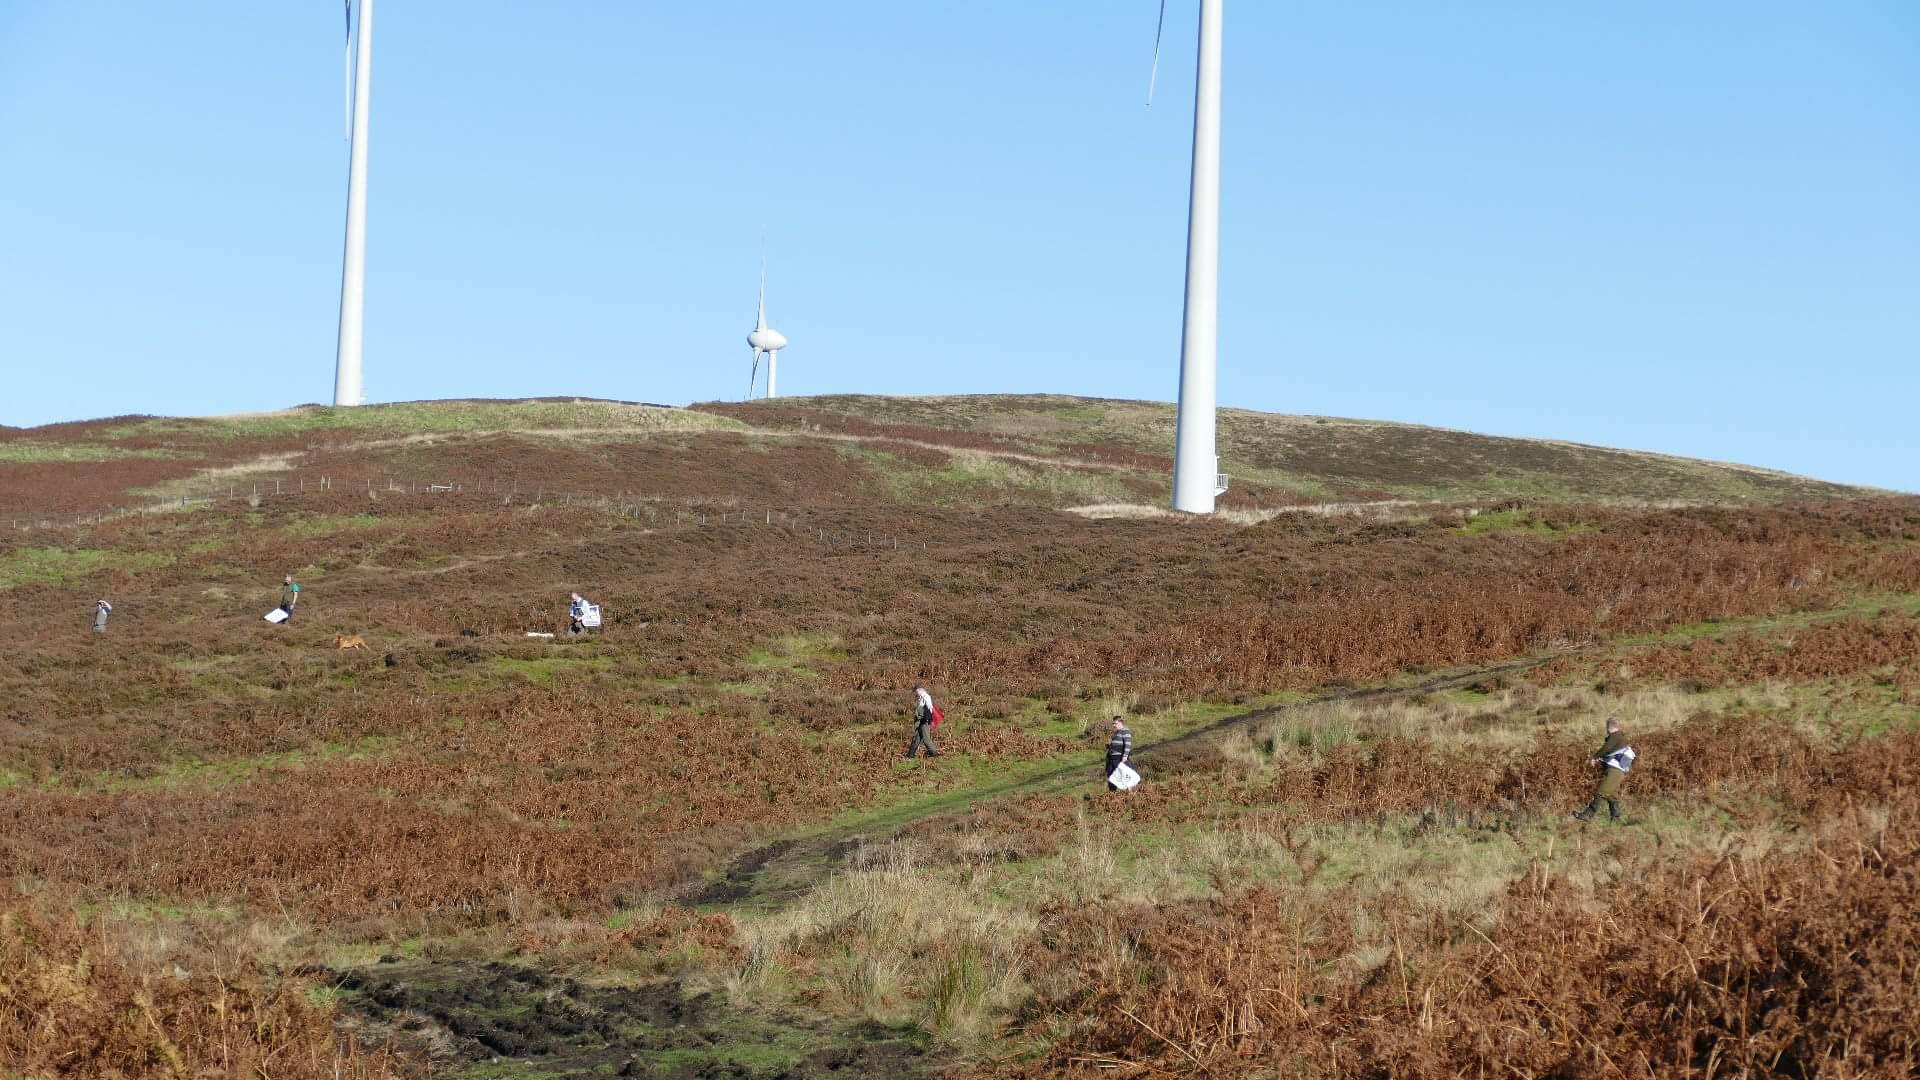 Beaters lined out below turbines on moorland in Scotland. Land uses, side by side like this, are increasingly commonplace today in Scotland.